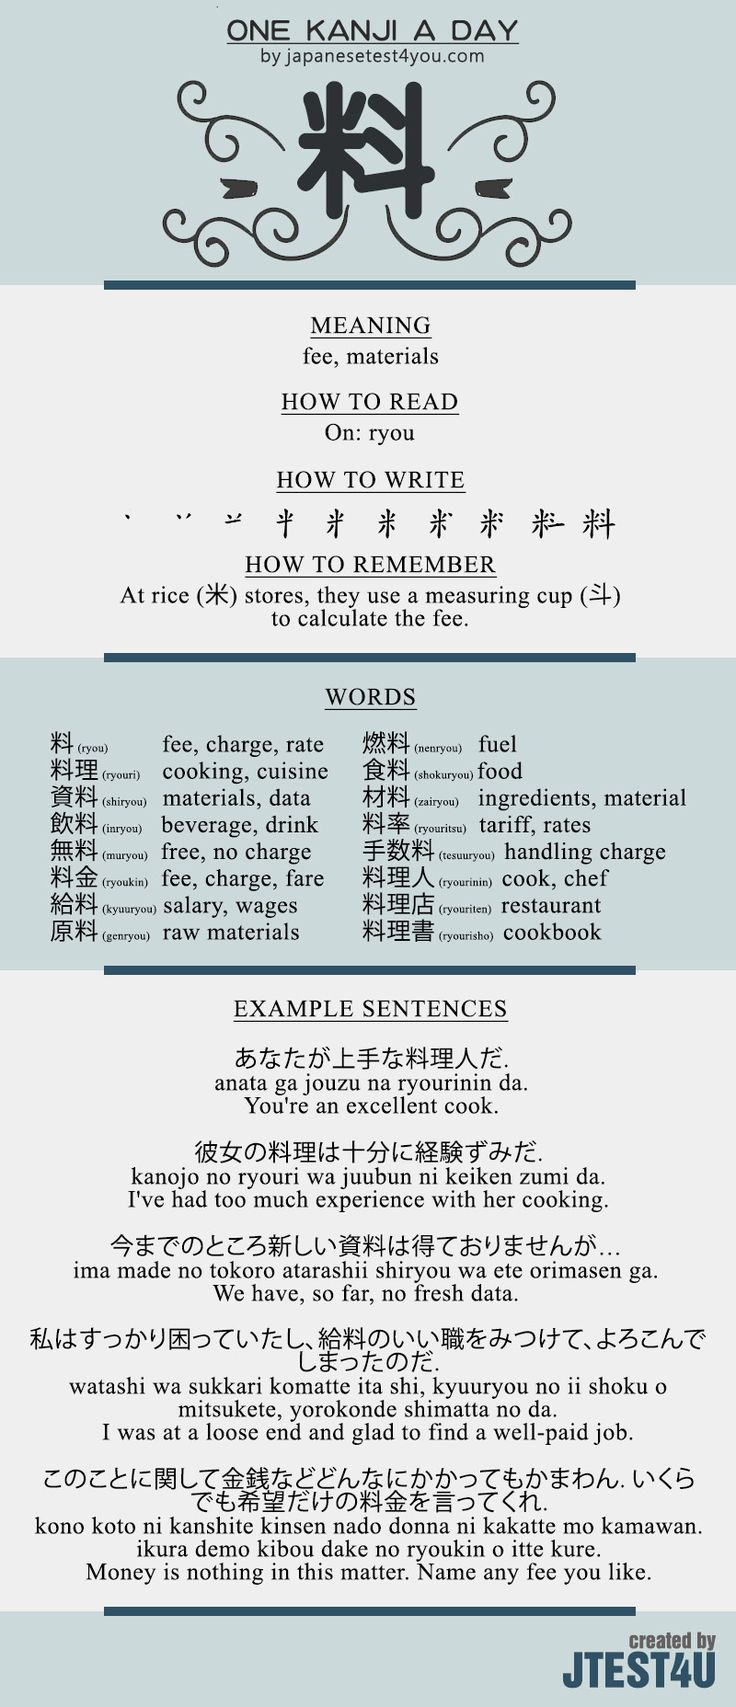 Learn one Kanji a day with infographic - 料 (ryou): http://japanesetest4you.com/learn-one-kanji-a-day-with-infographic-%e6%96%99-ryou/